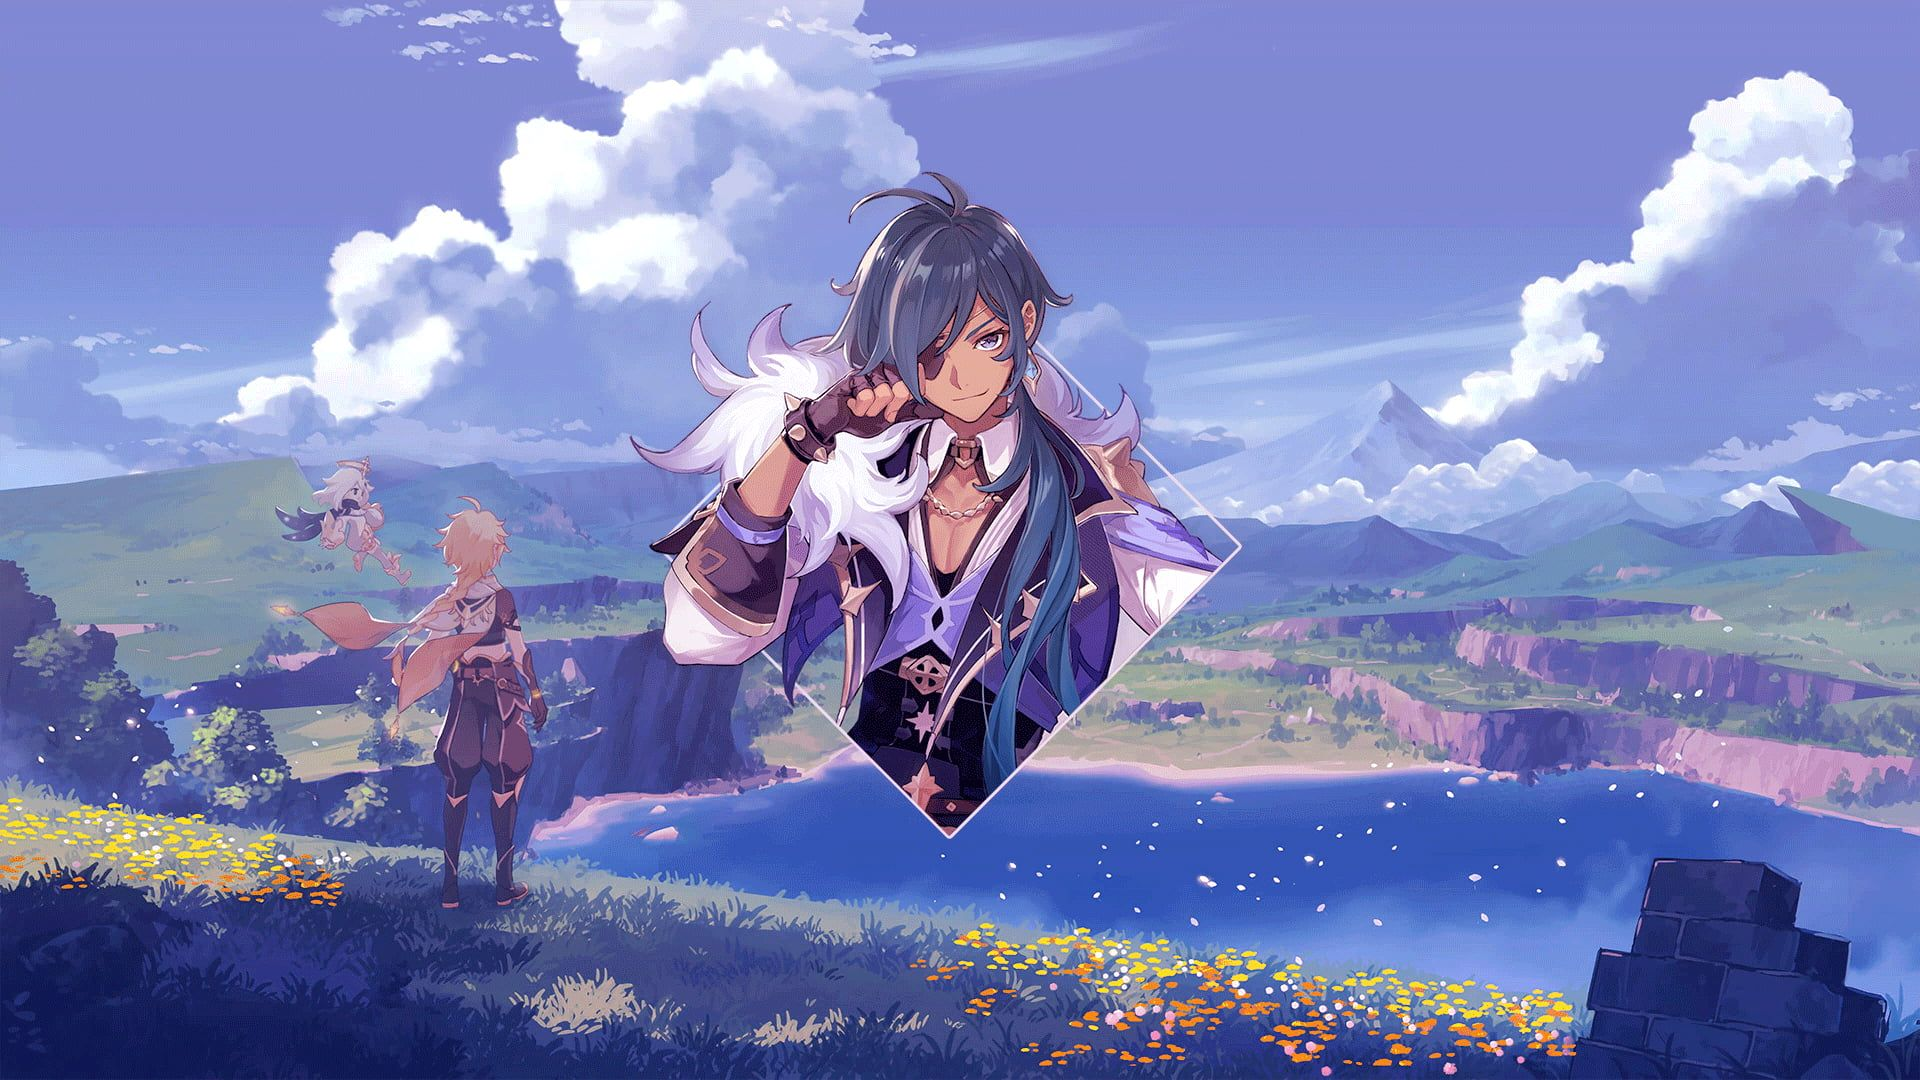 Anime Anime Boys Genshin Impact Kaeya Digital Art Photoshop Picture In Picture Piture In Picture Anim Photoshop Wallpapers Anime Boy Japanese Poster Design